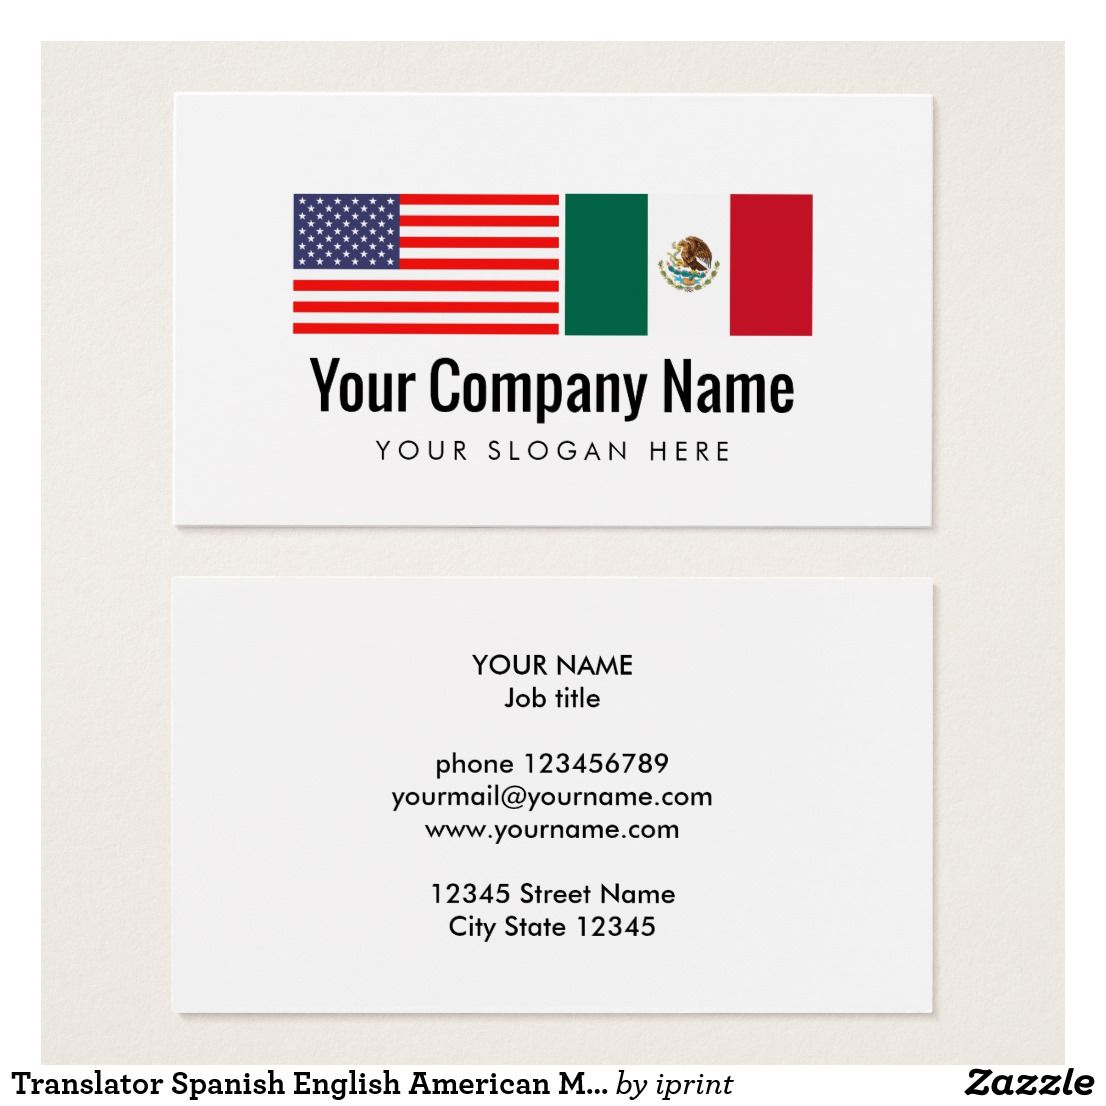 Translator Spanish English American Mexican flag Business Card ...